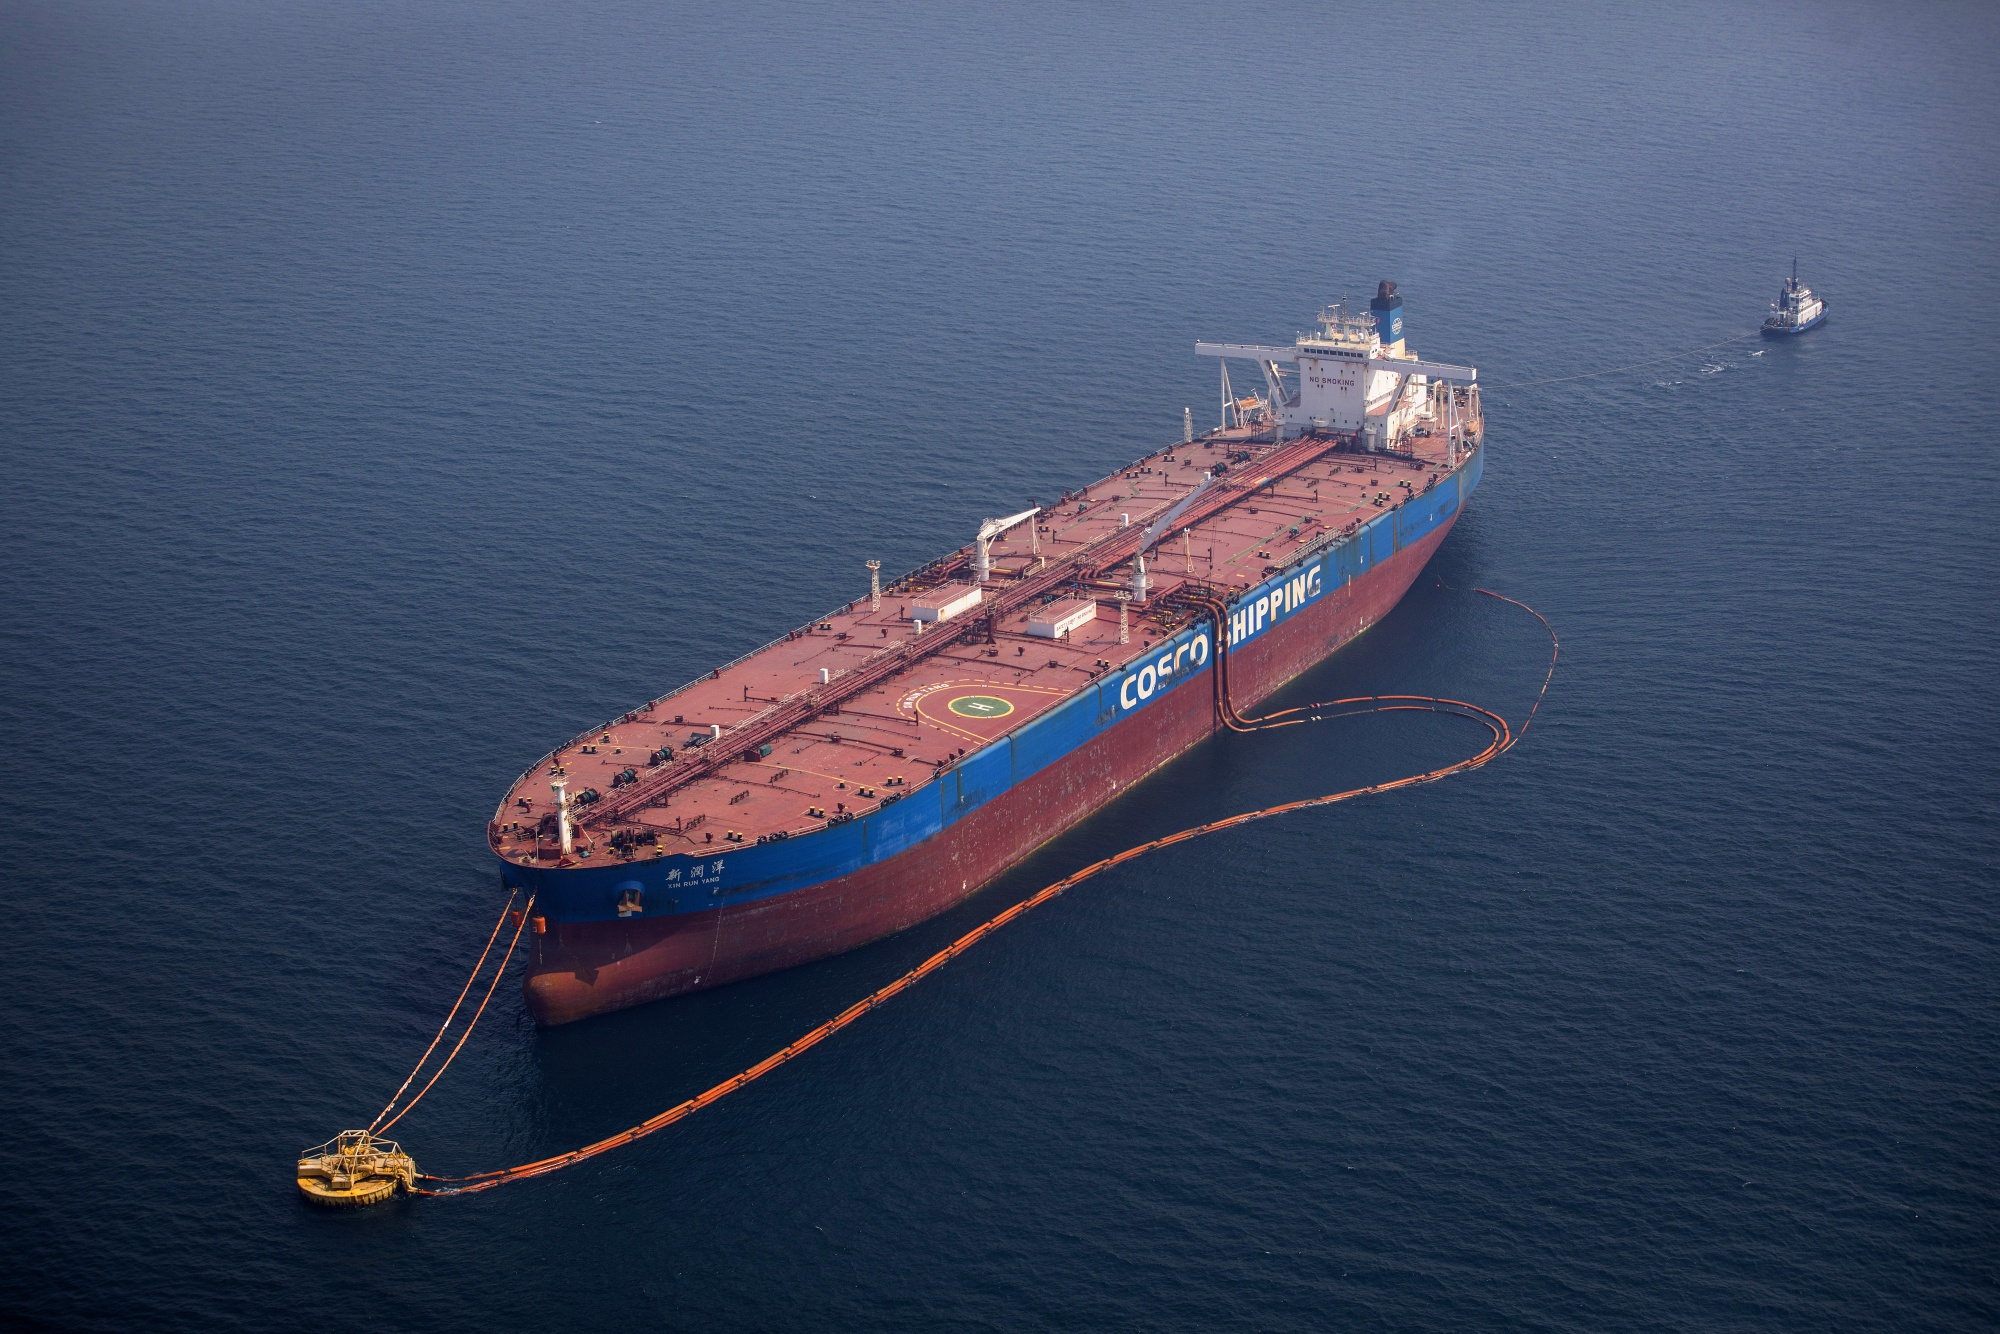 Oil tanker market turns 'bullish' in wake of cuts - News for